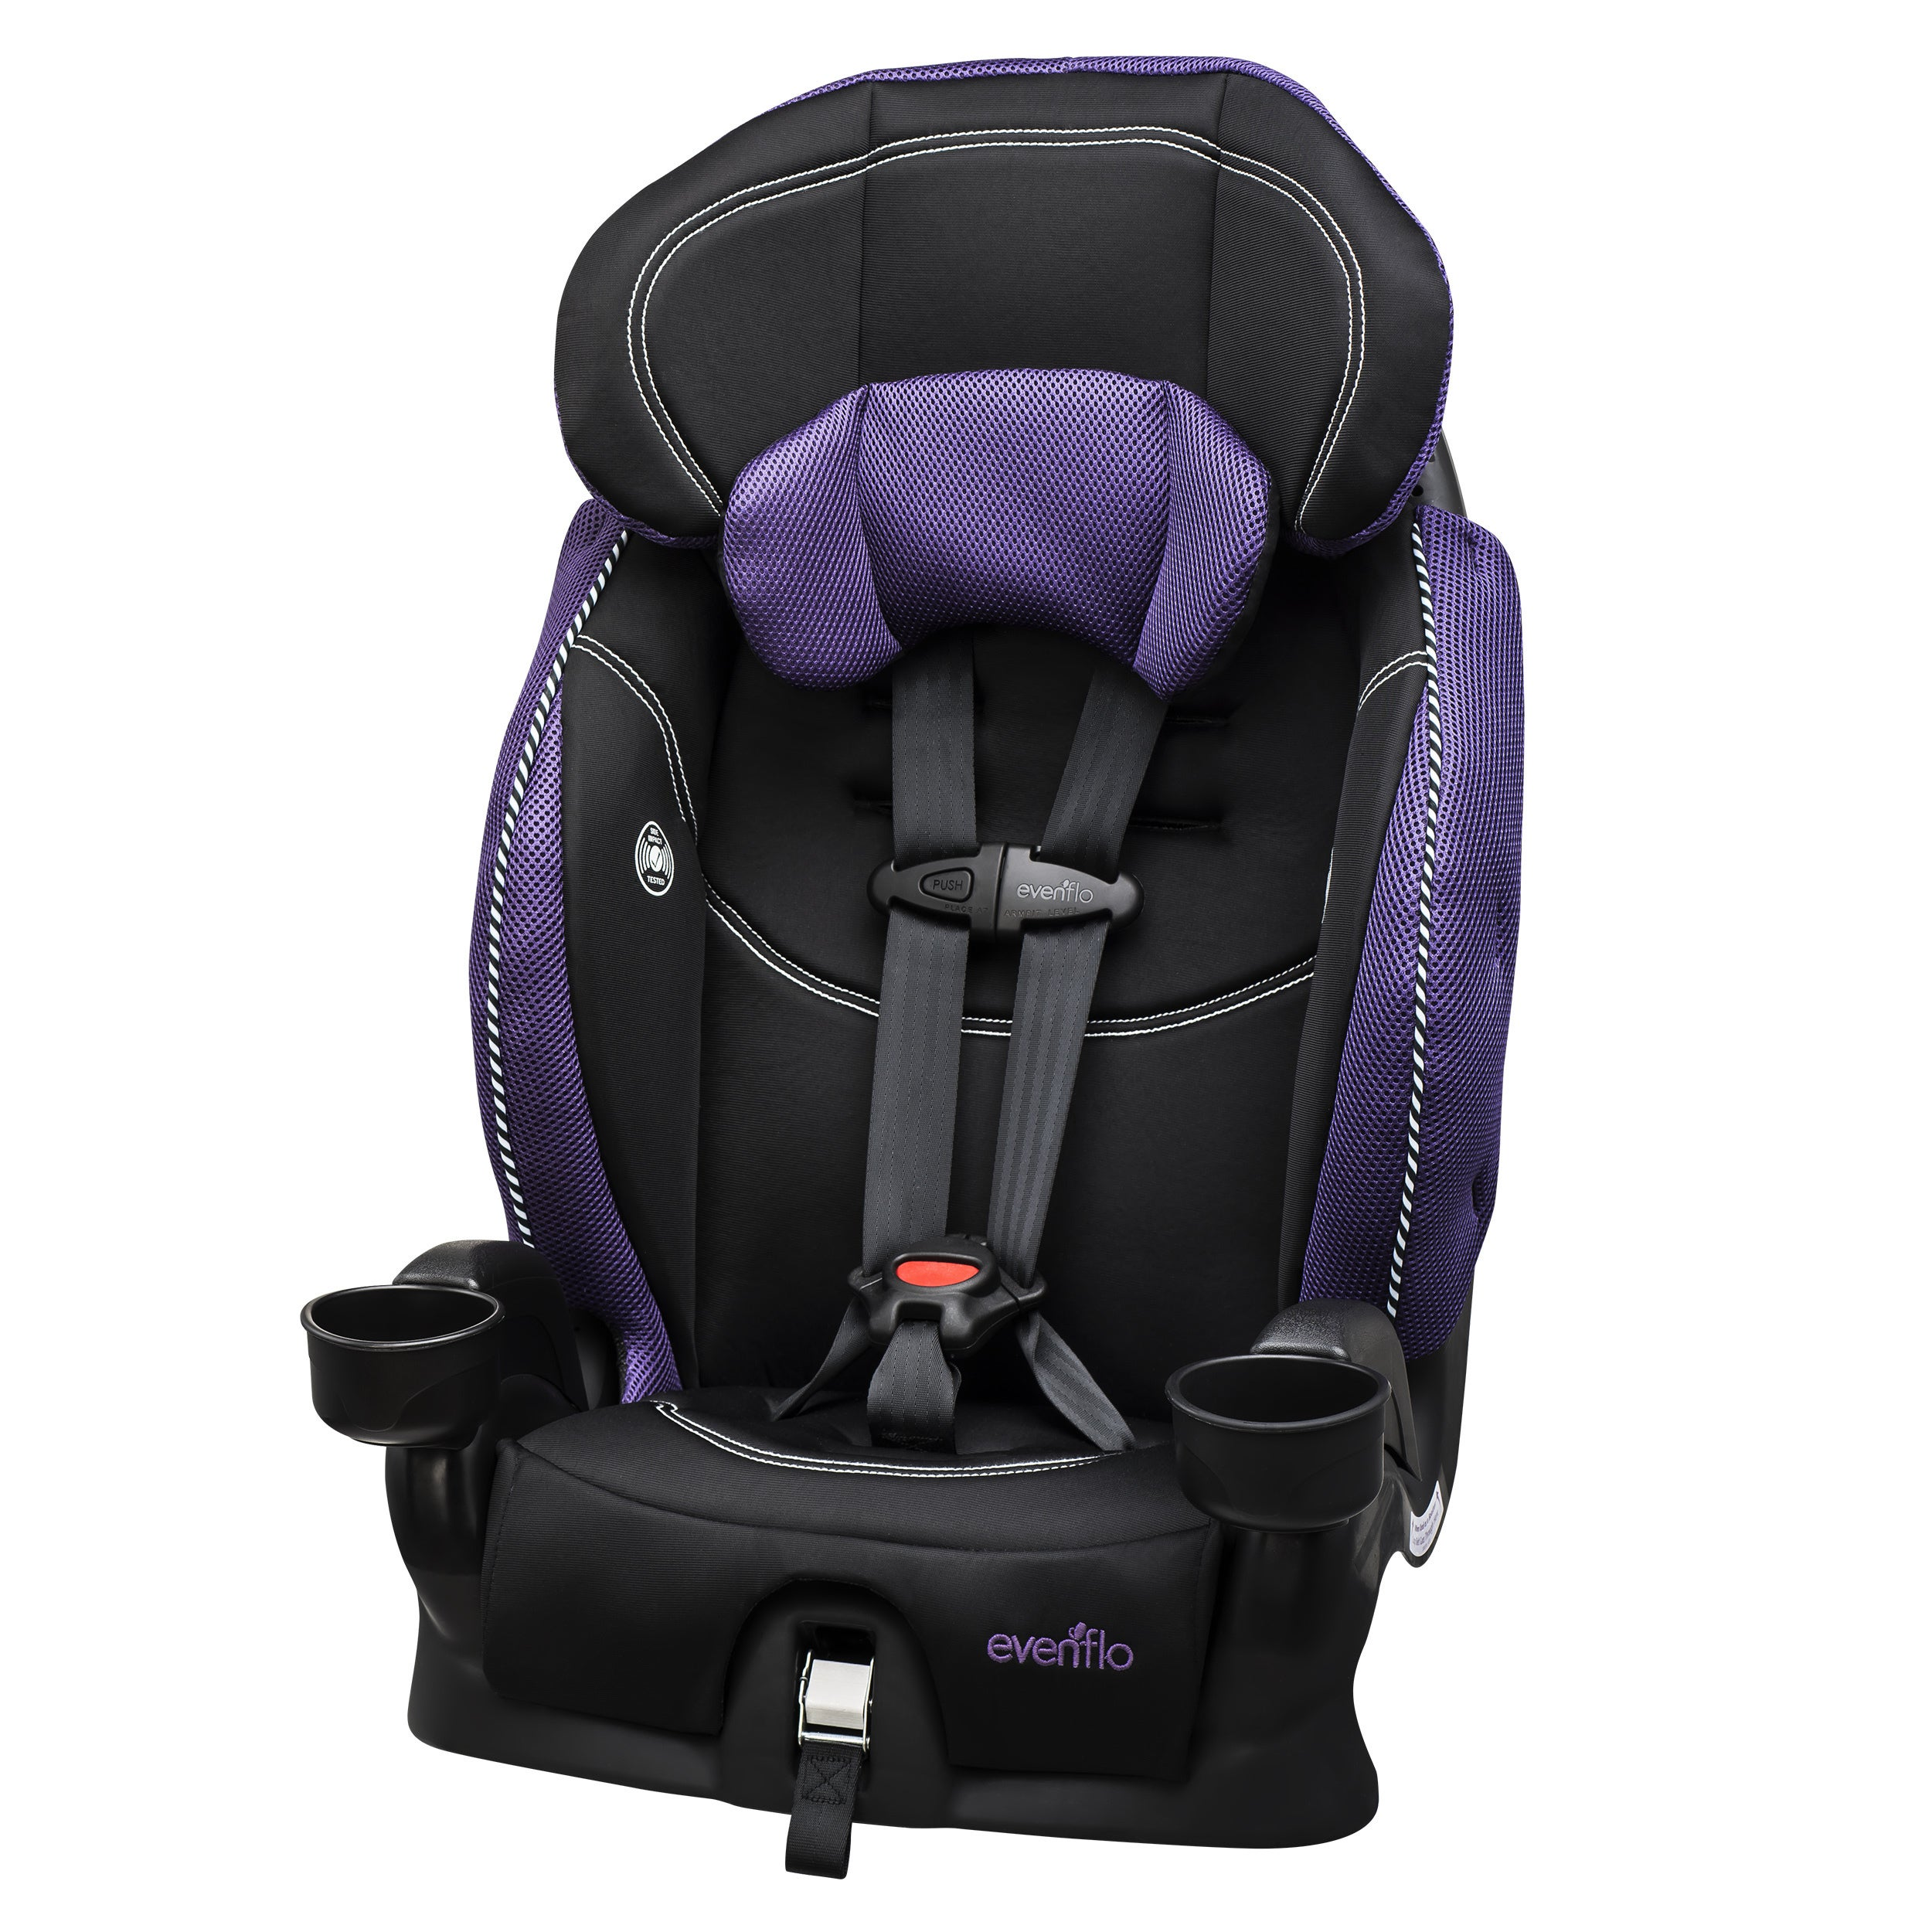 Evenflo Chase LX Booster Car Seat in Jasmin (Jasmin), Purple